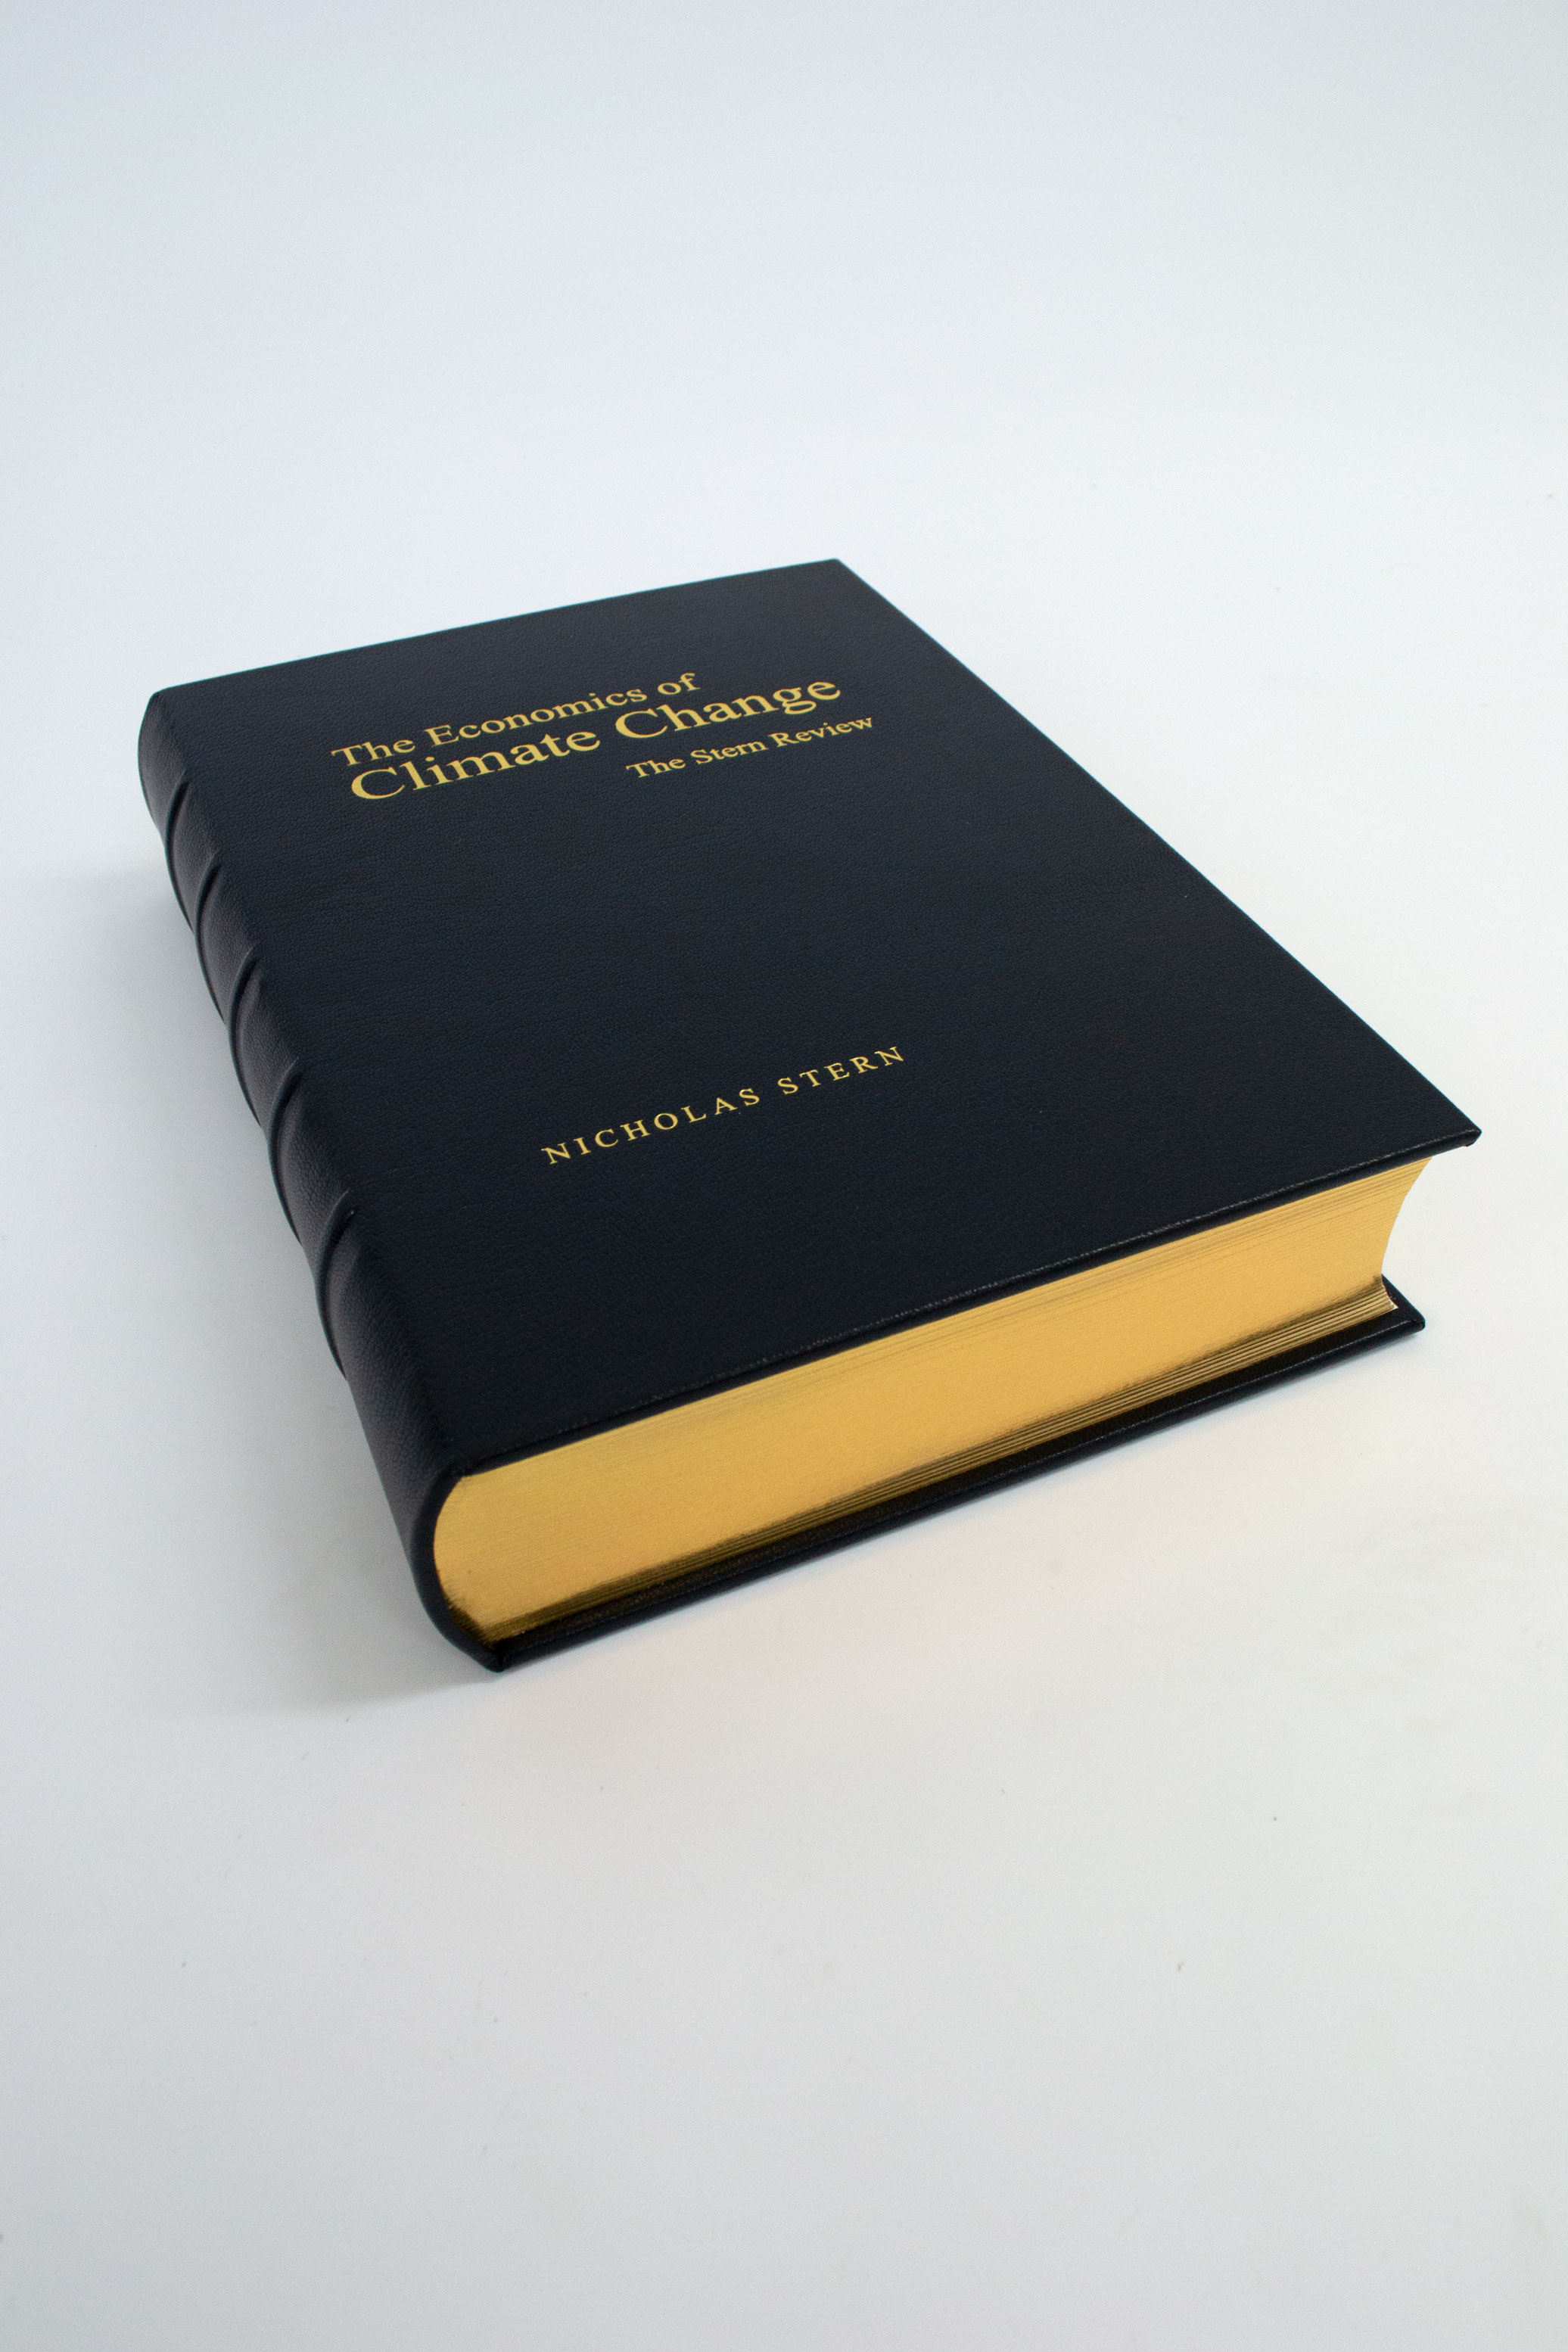 Leather bound book - The Economics of Climate Change